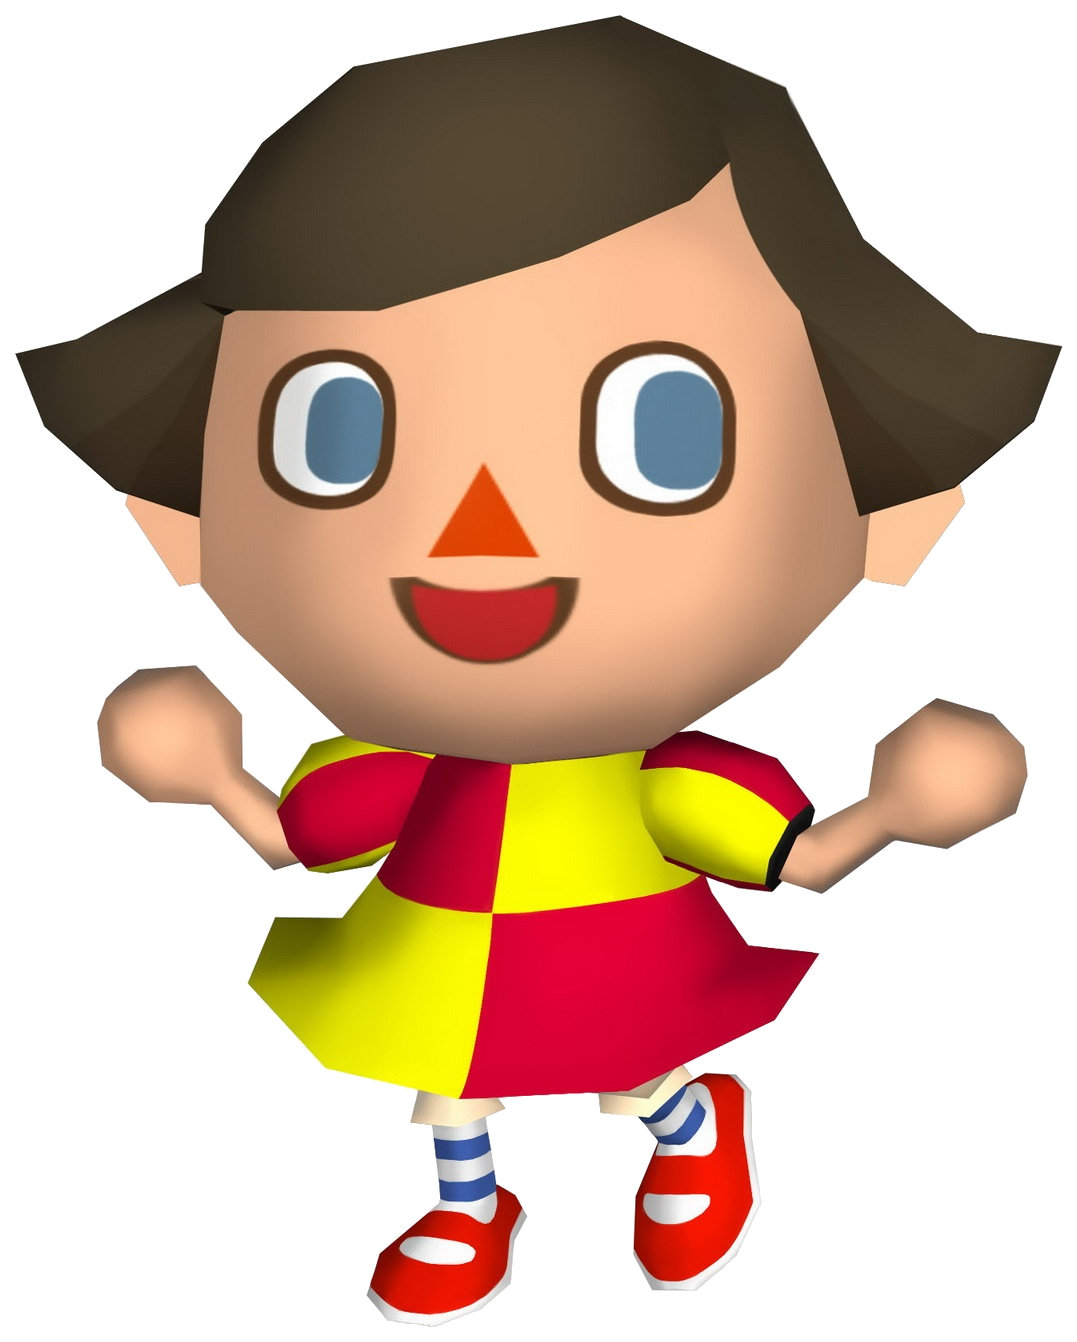 animal crossing villager png